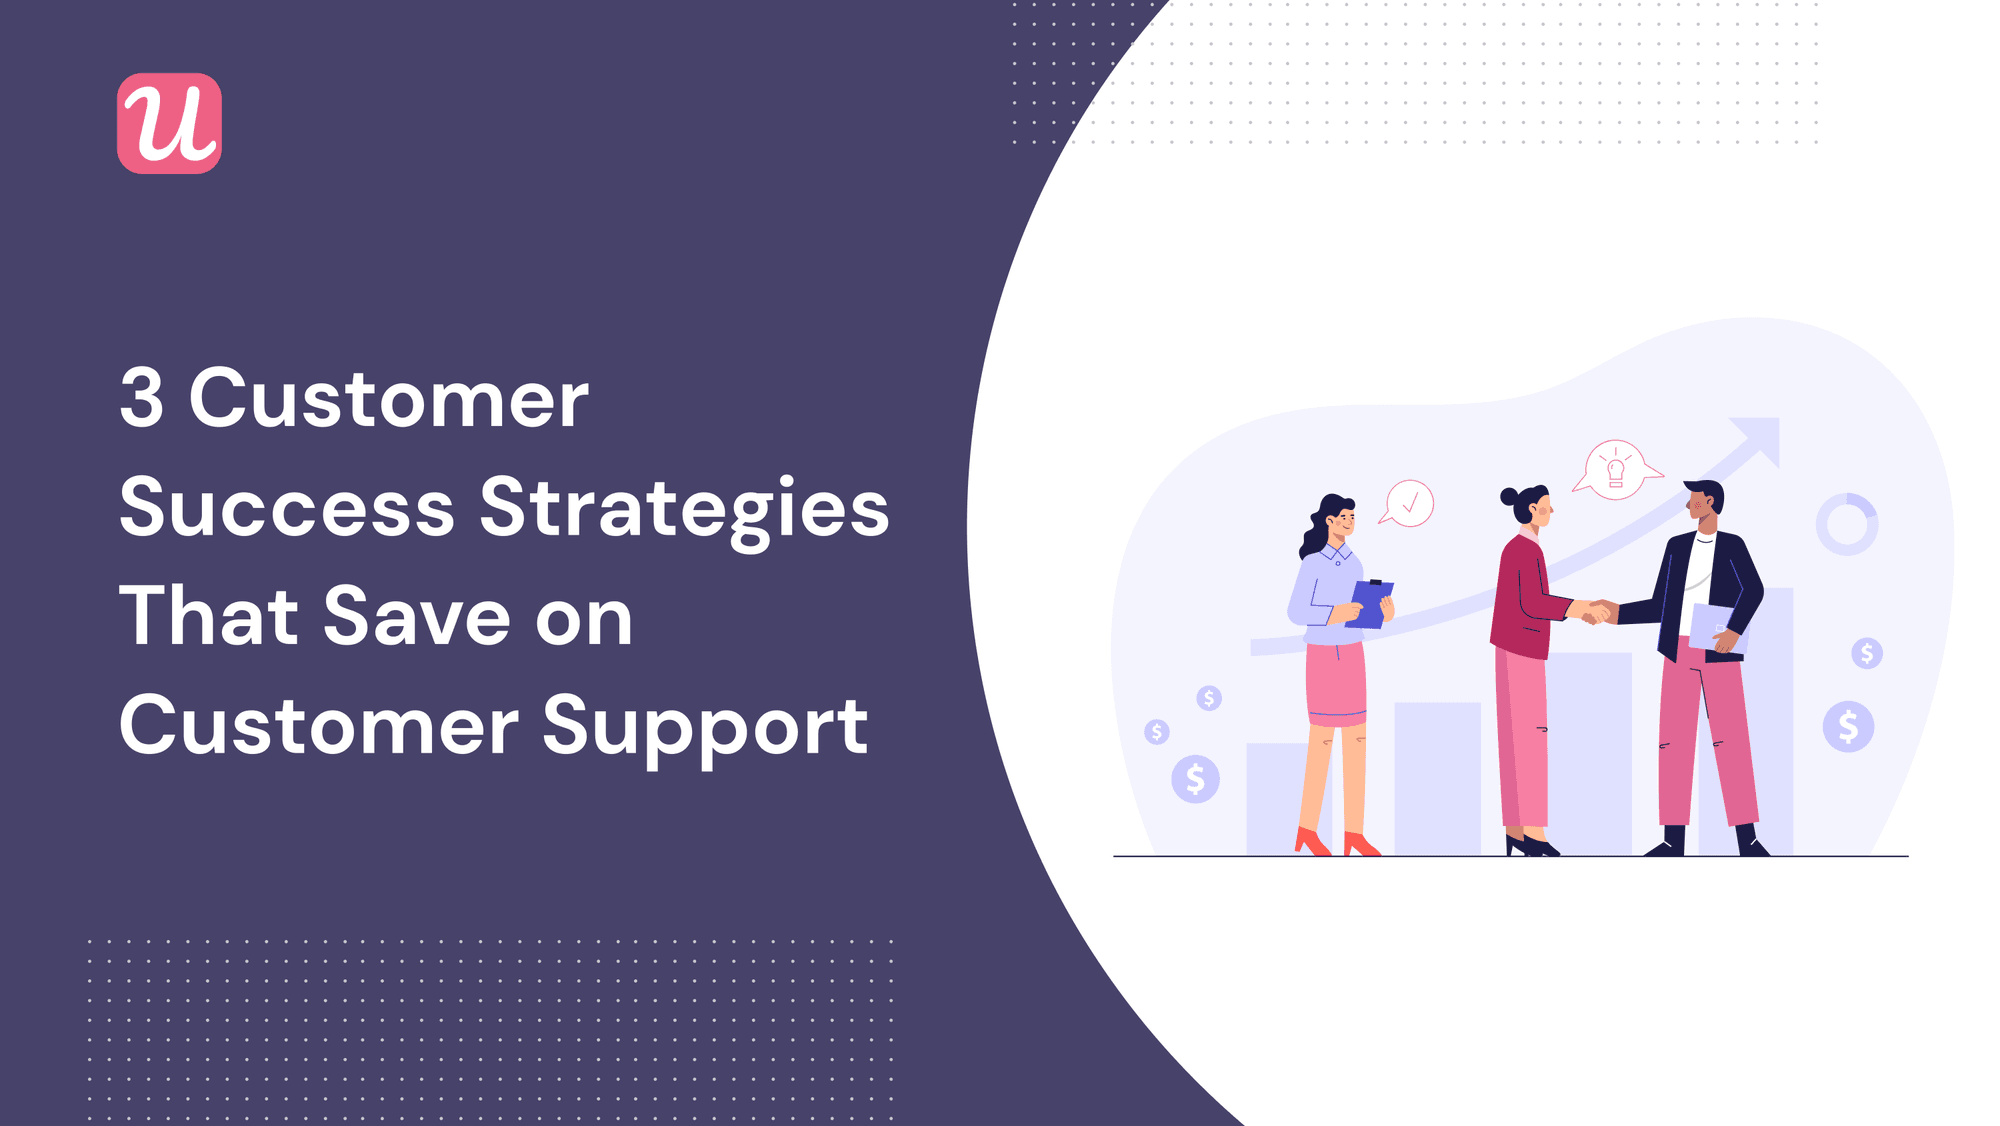 3 Customer Success Strategies That Save on Customer Support